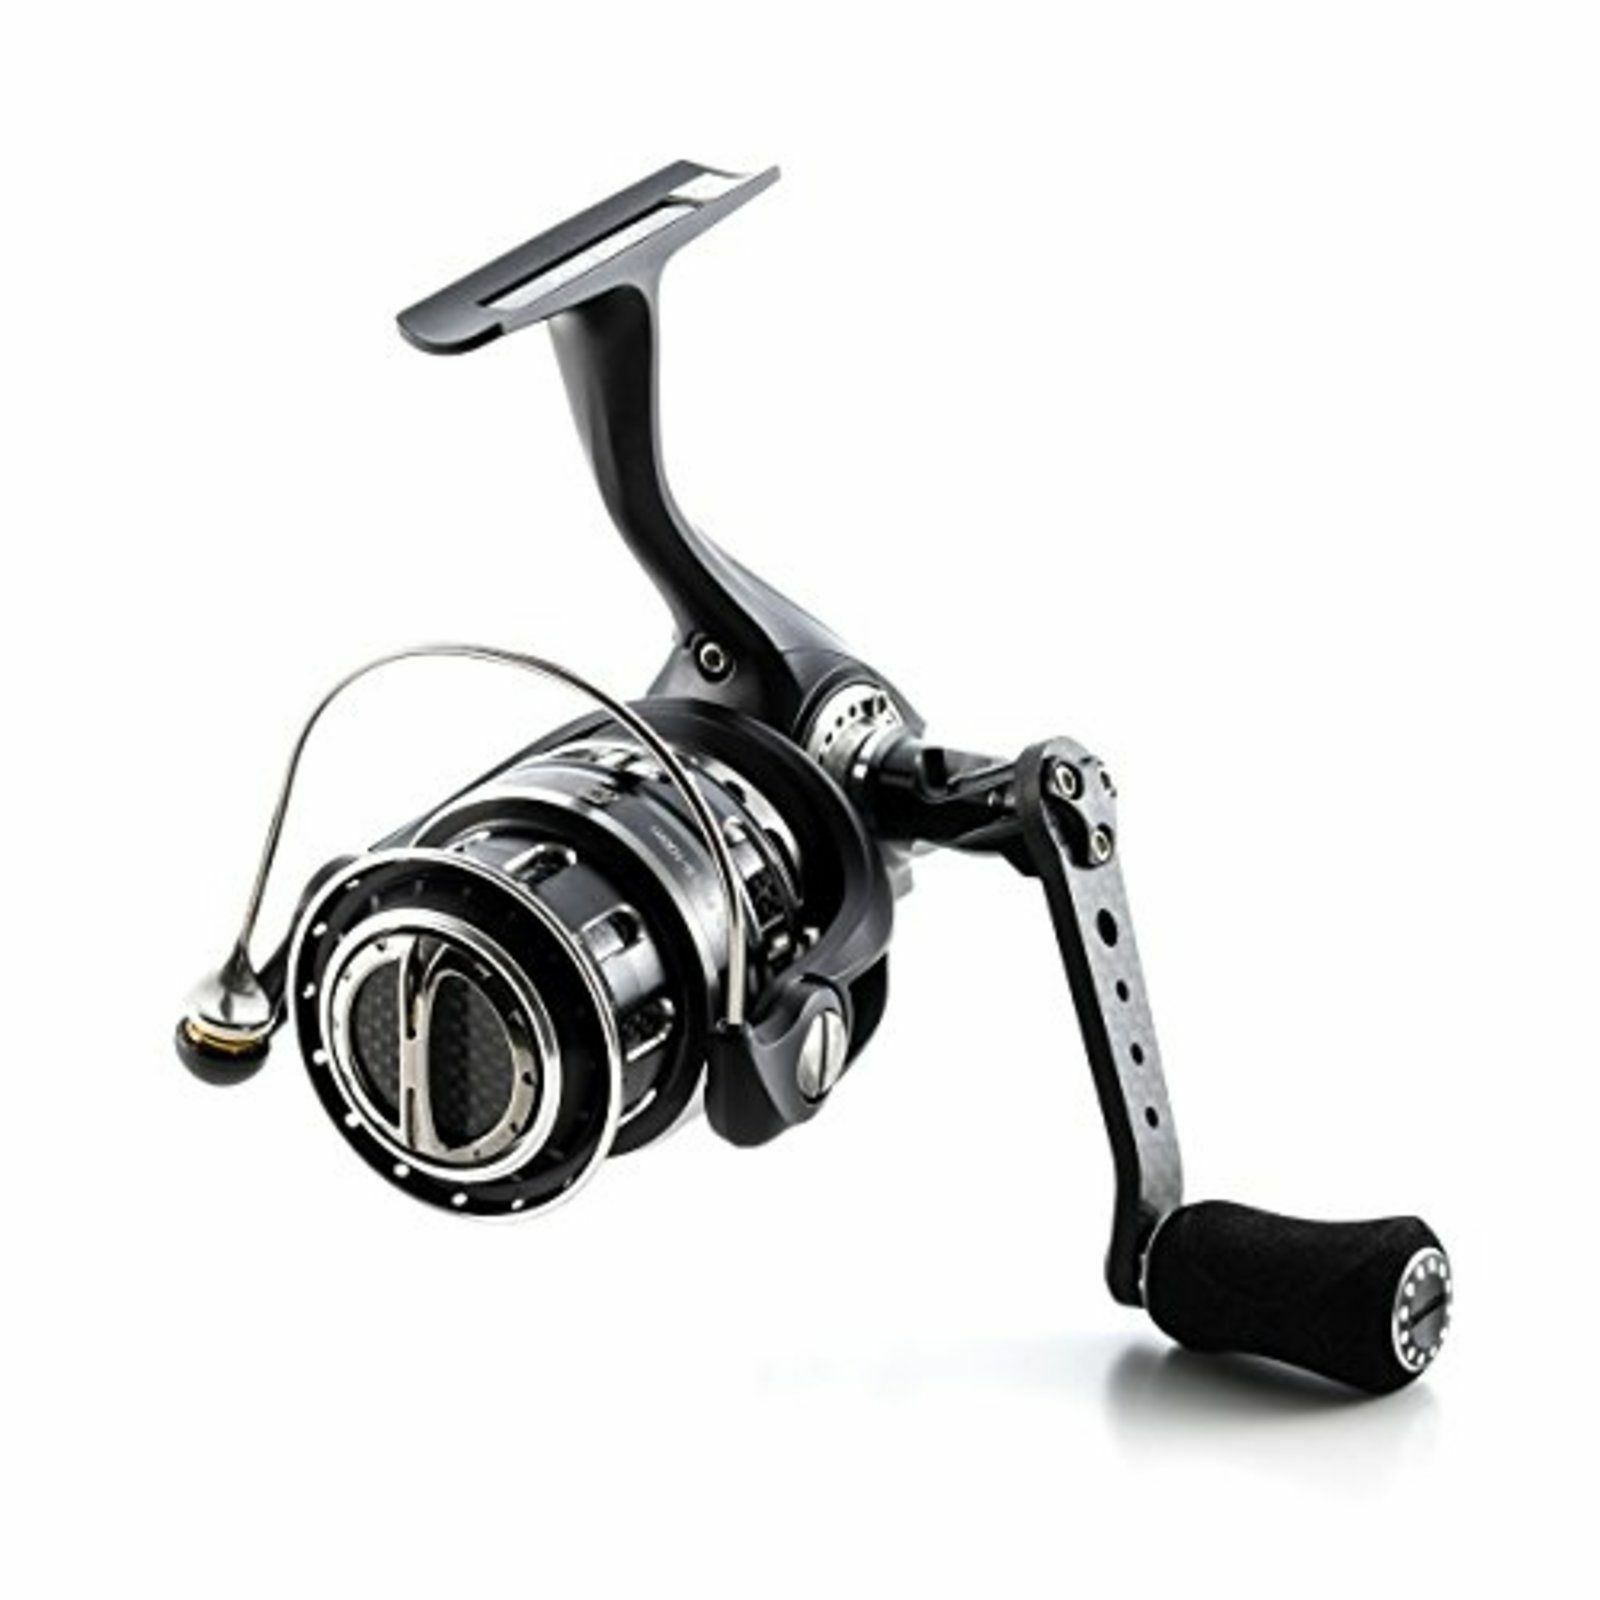 Abu Garcia Revo MGX 2000S Spinning Fishing NEW Reel BRAND NEW Fishing + Warranty NEW 2017 7decef